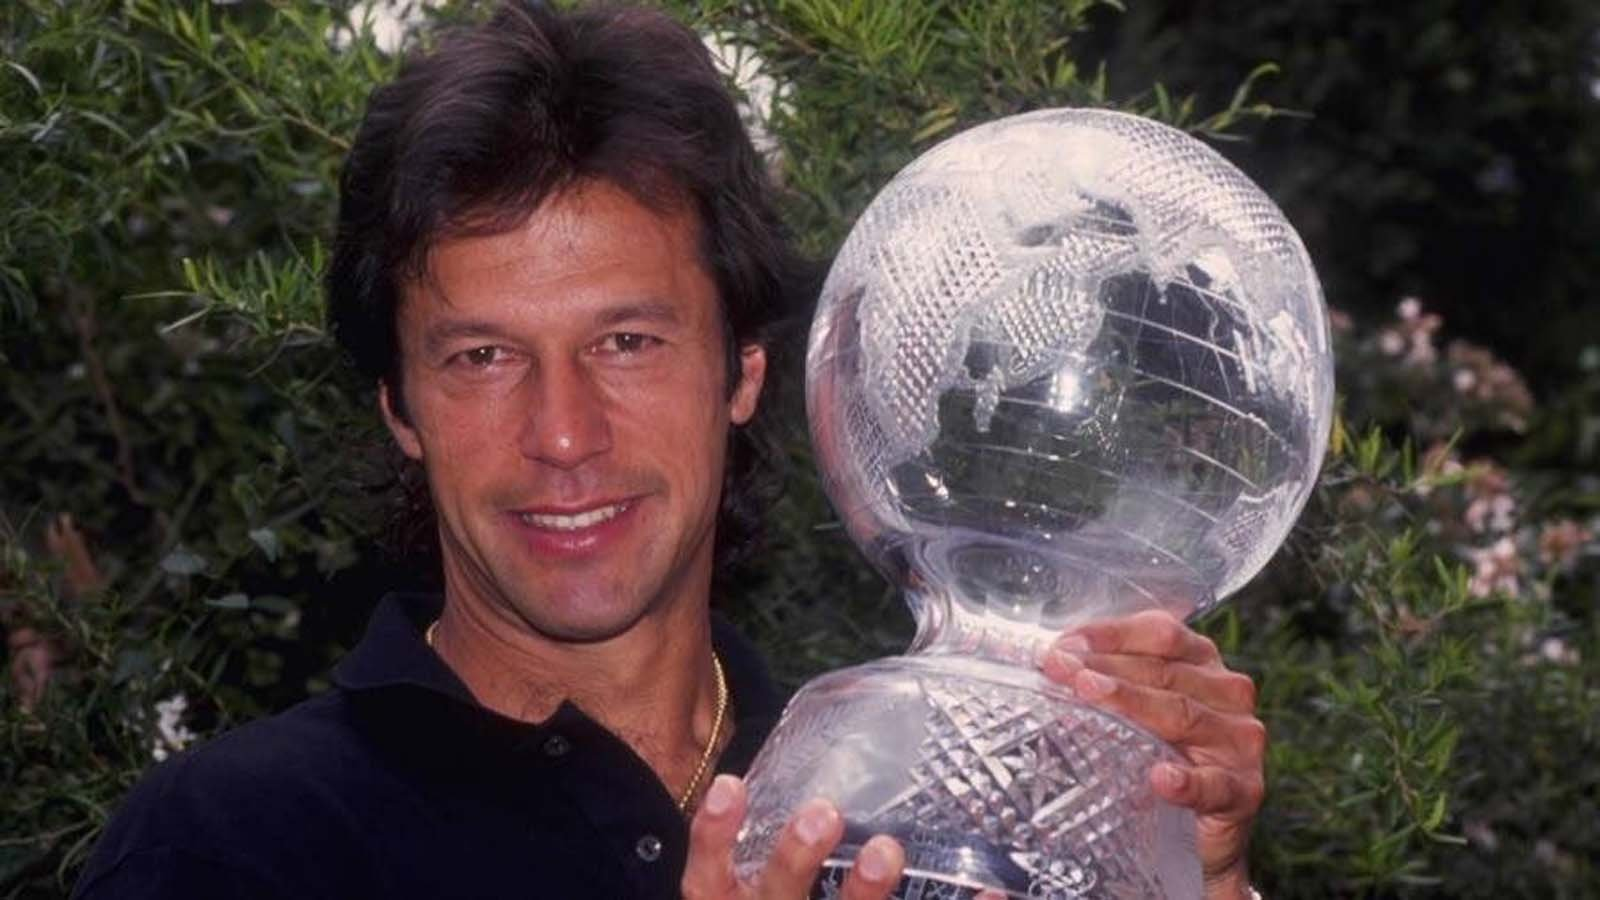 Silver jubilee of 1992 Word Cup celebrated by Pakistanis today